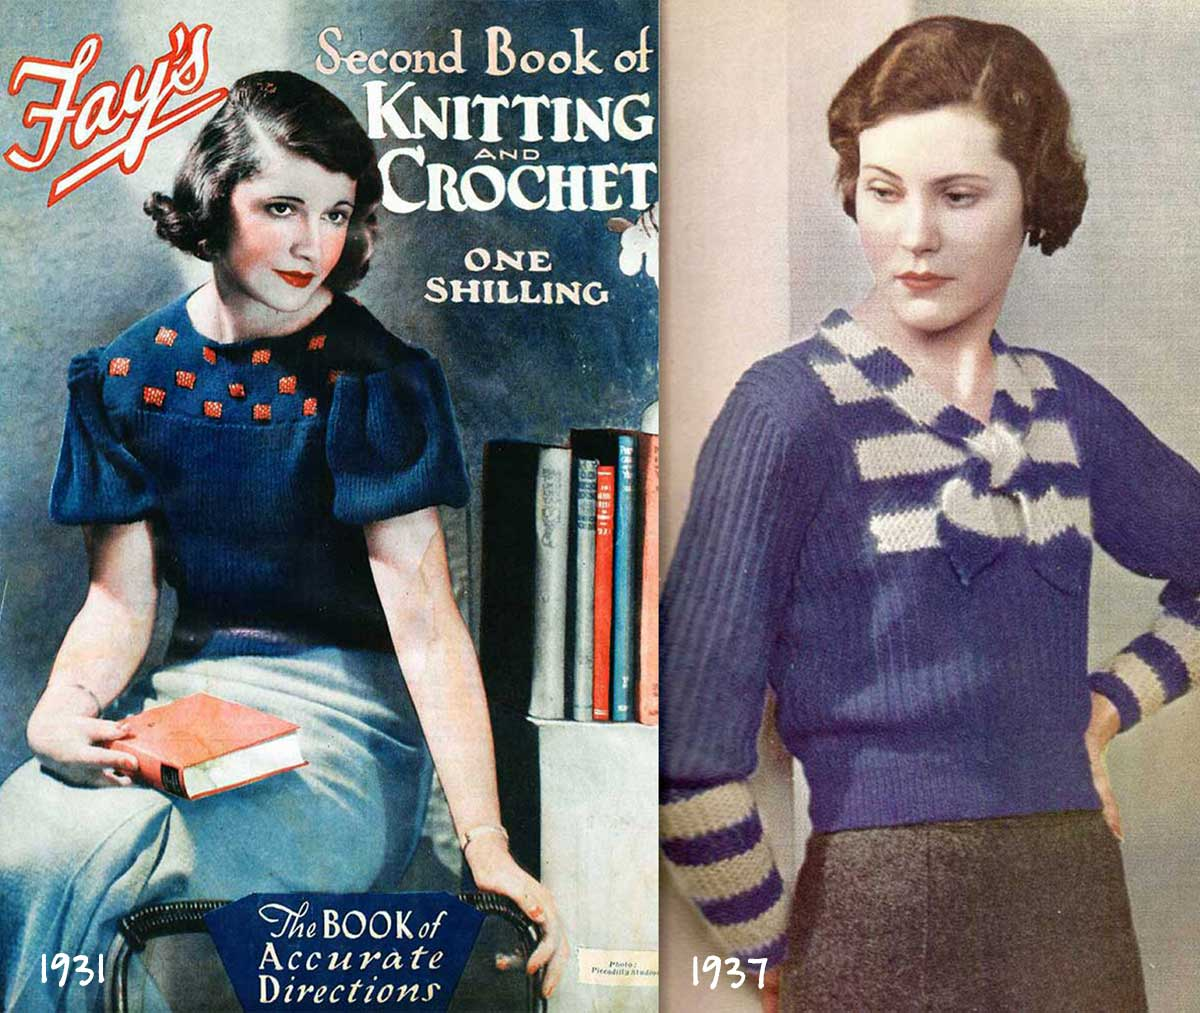 1934---Ode-to-the-Sweater